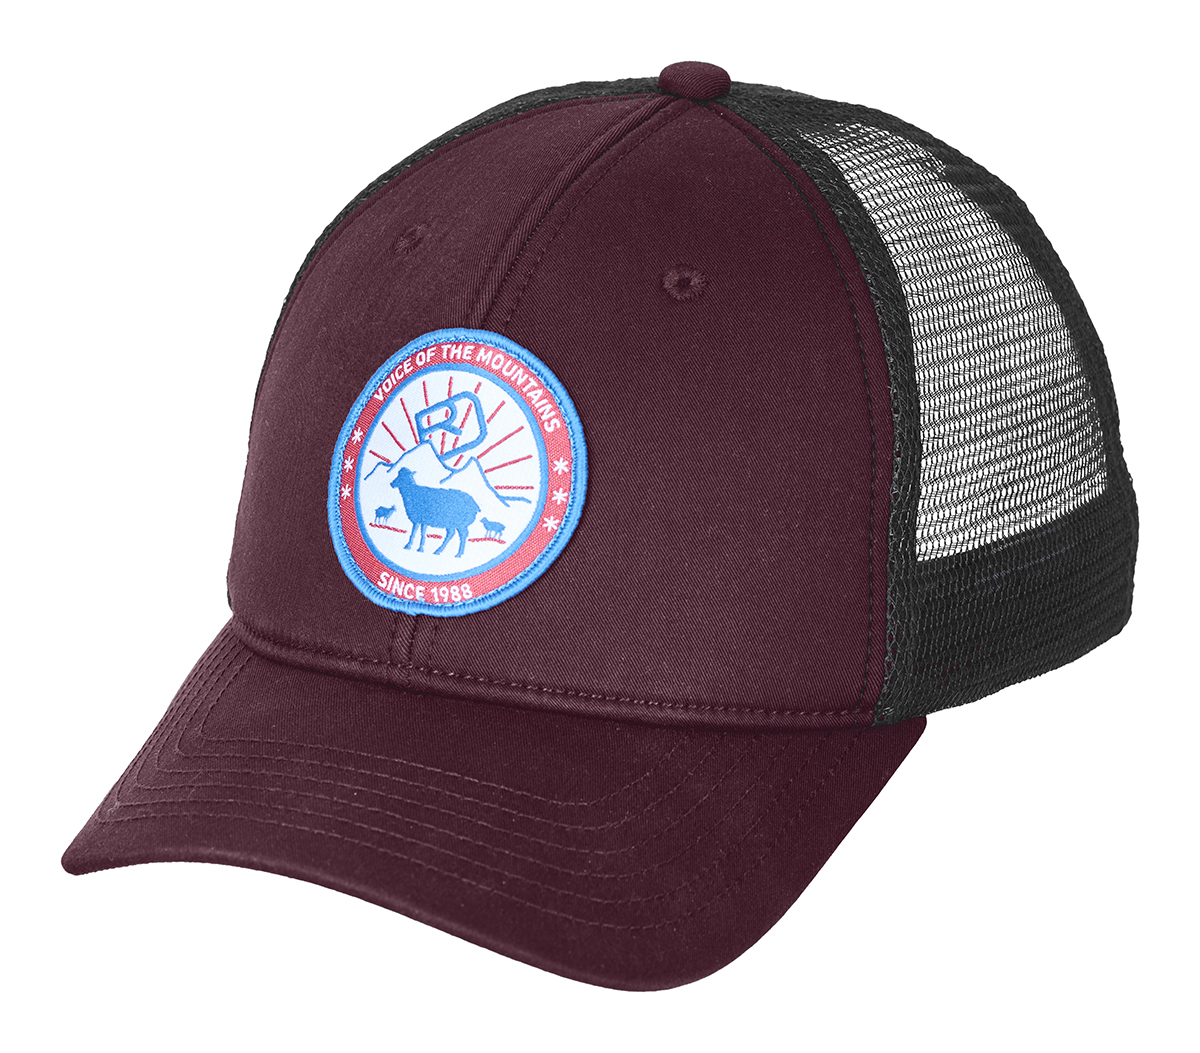 Kšiltovka Ortovox Stay In Sheep Trucker Cap  Dark Wine